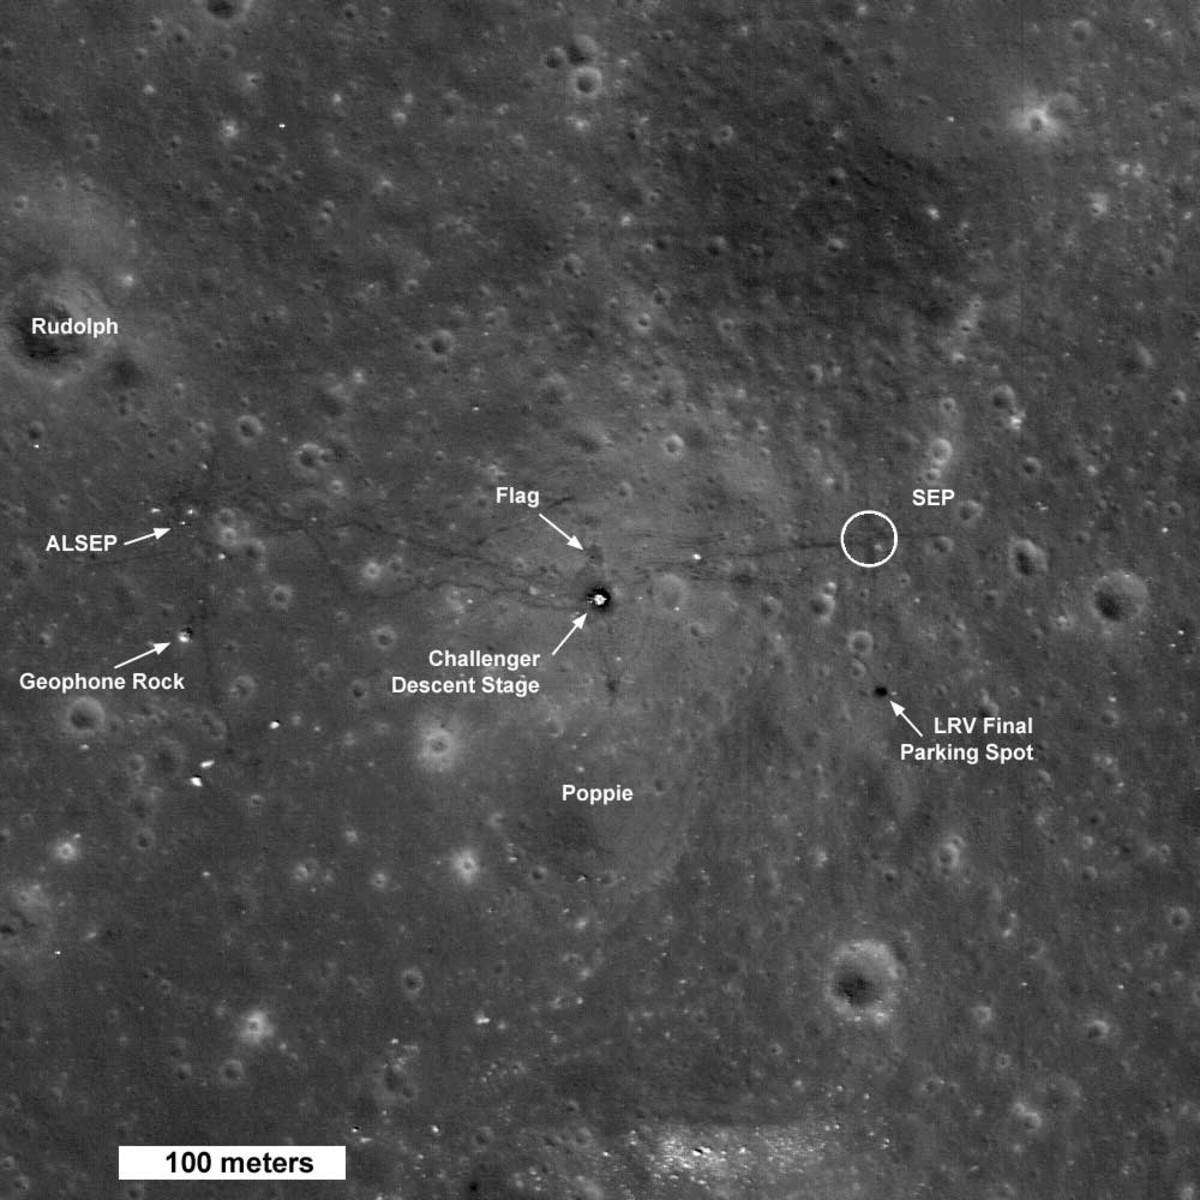 September 2009: First image showing shadow of flag on moon.